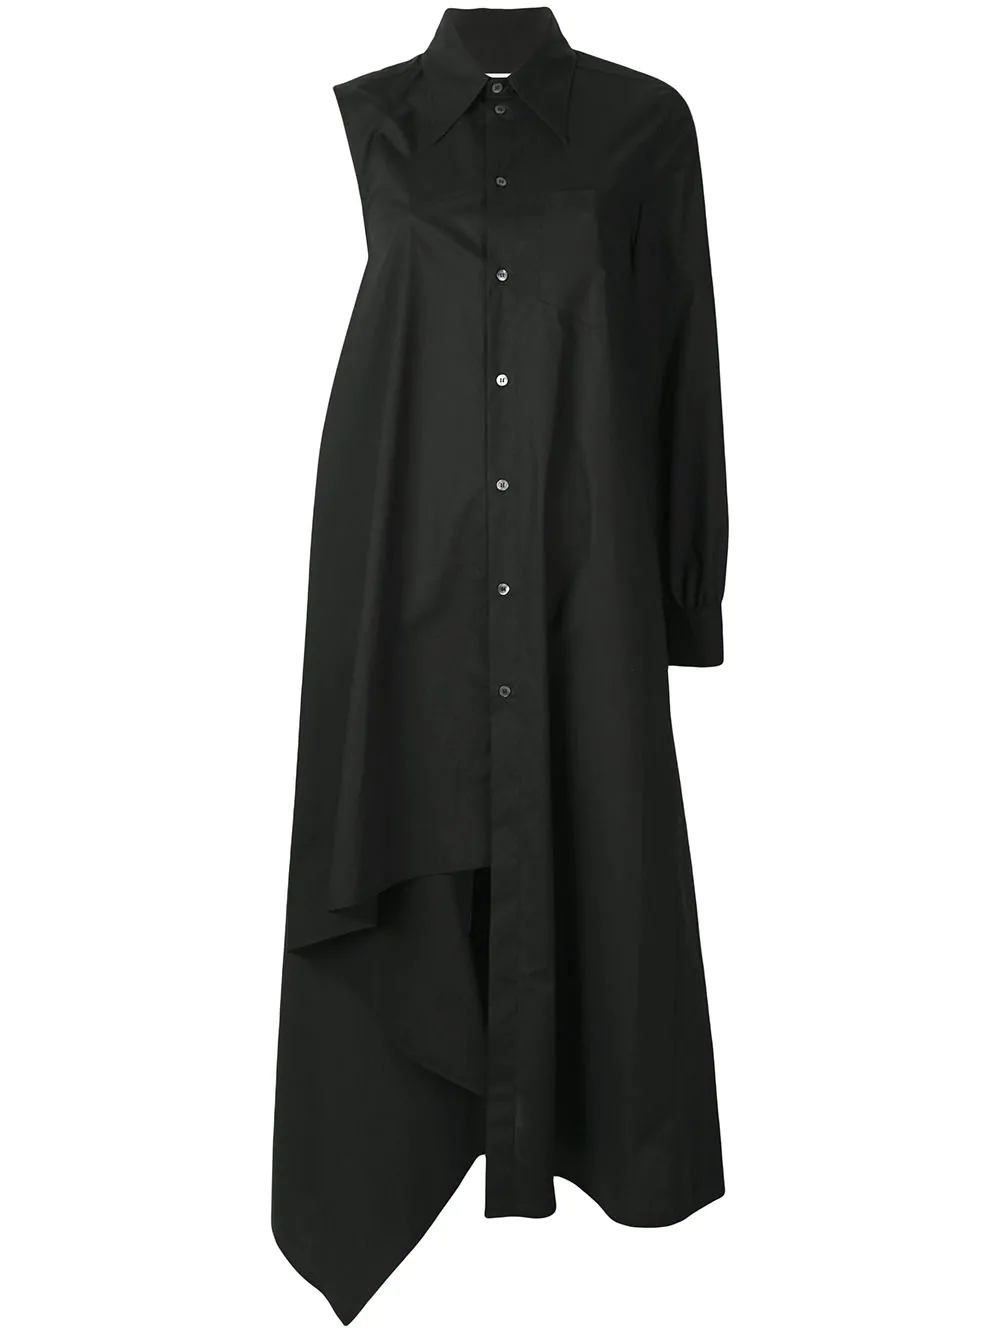 de73520d55dc Mm6 Maison Margiela Asymmetric Shirt Dress - Black | ModeSens